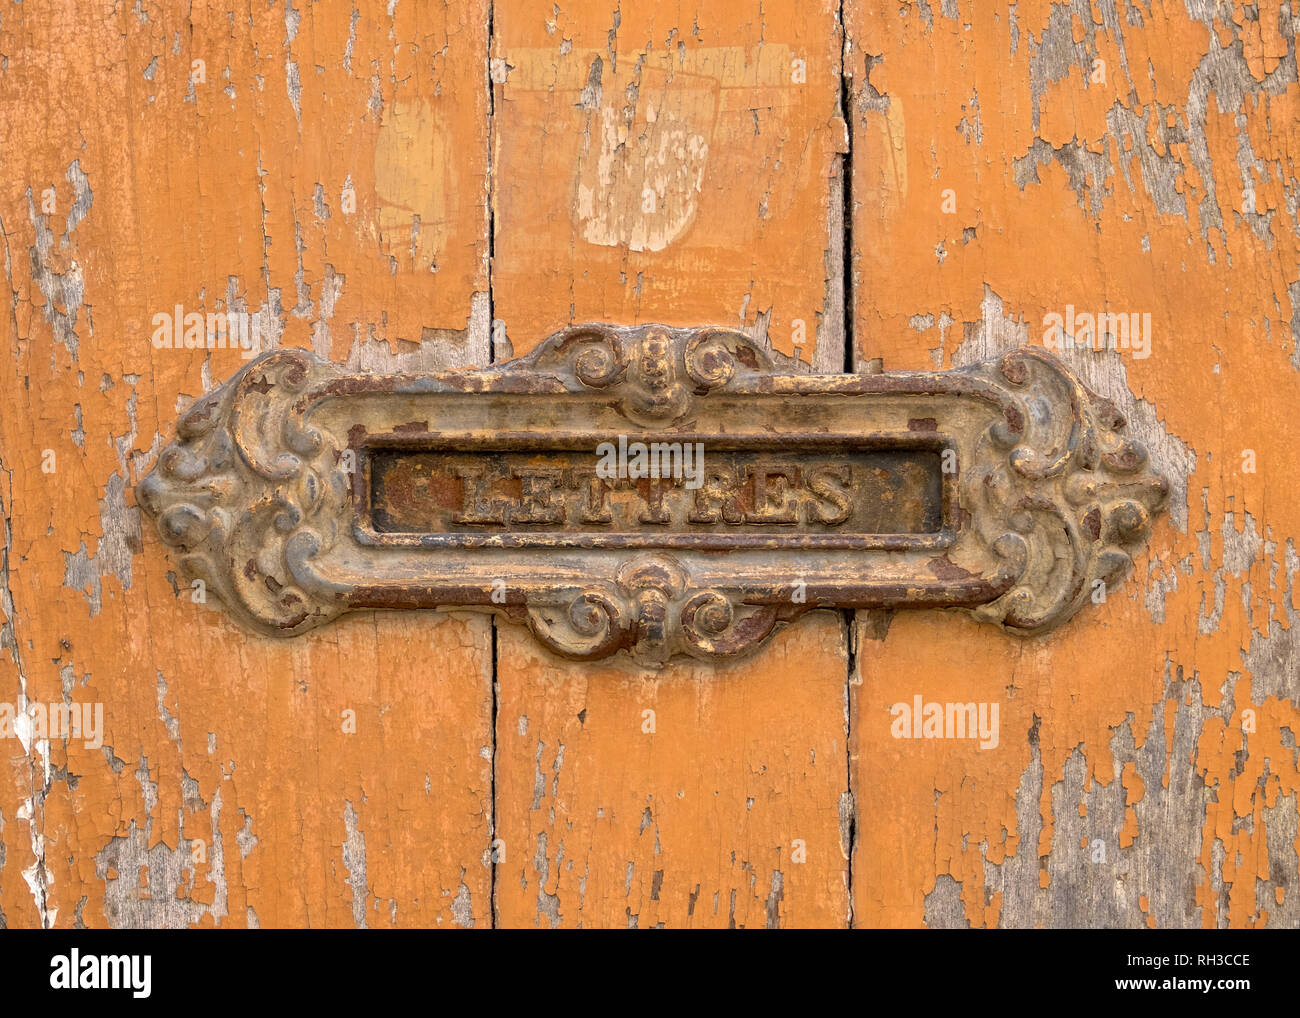 rusted-old-french-letter-slot-on-orange-peeling-wood-door-writing-in-french-lettres-RH3CCE.jpg